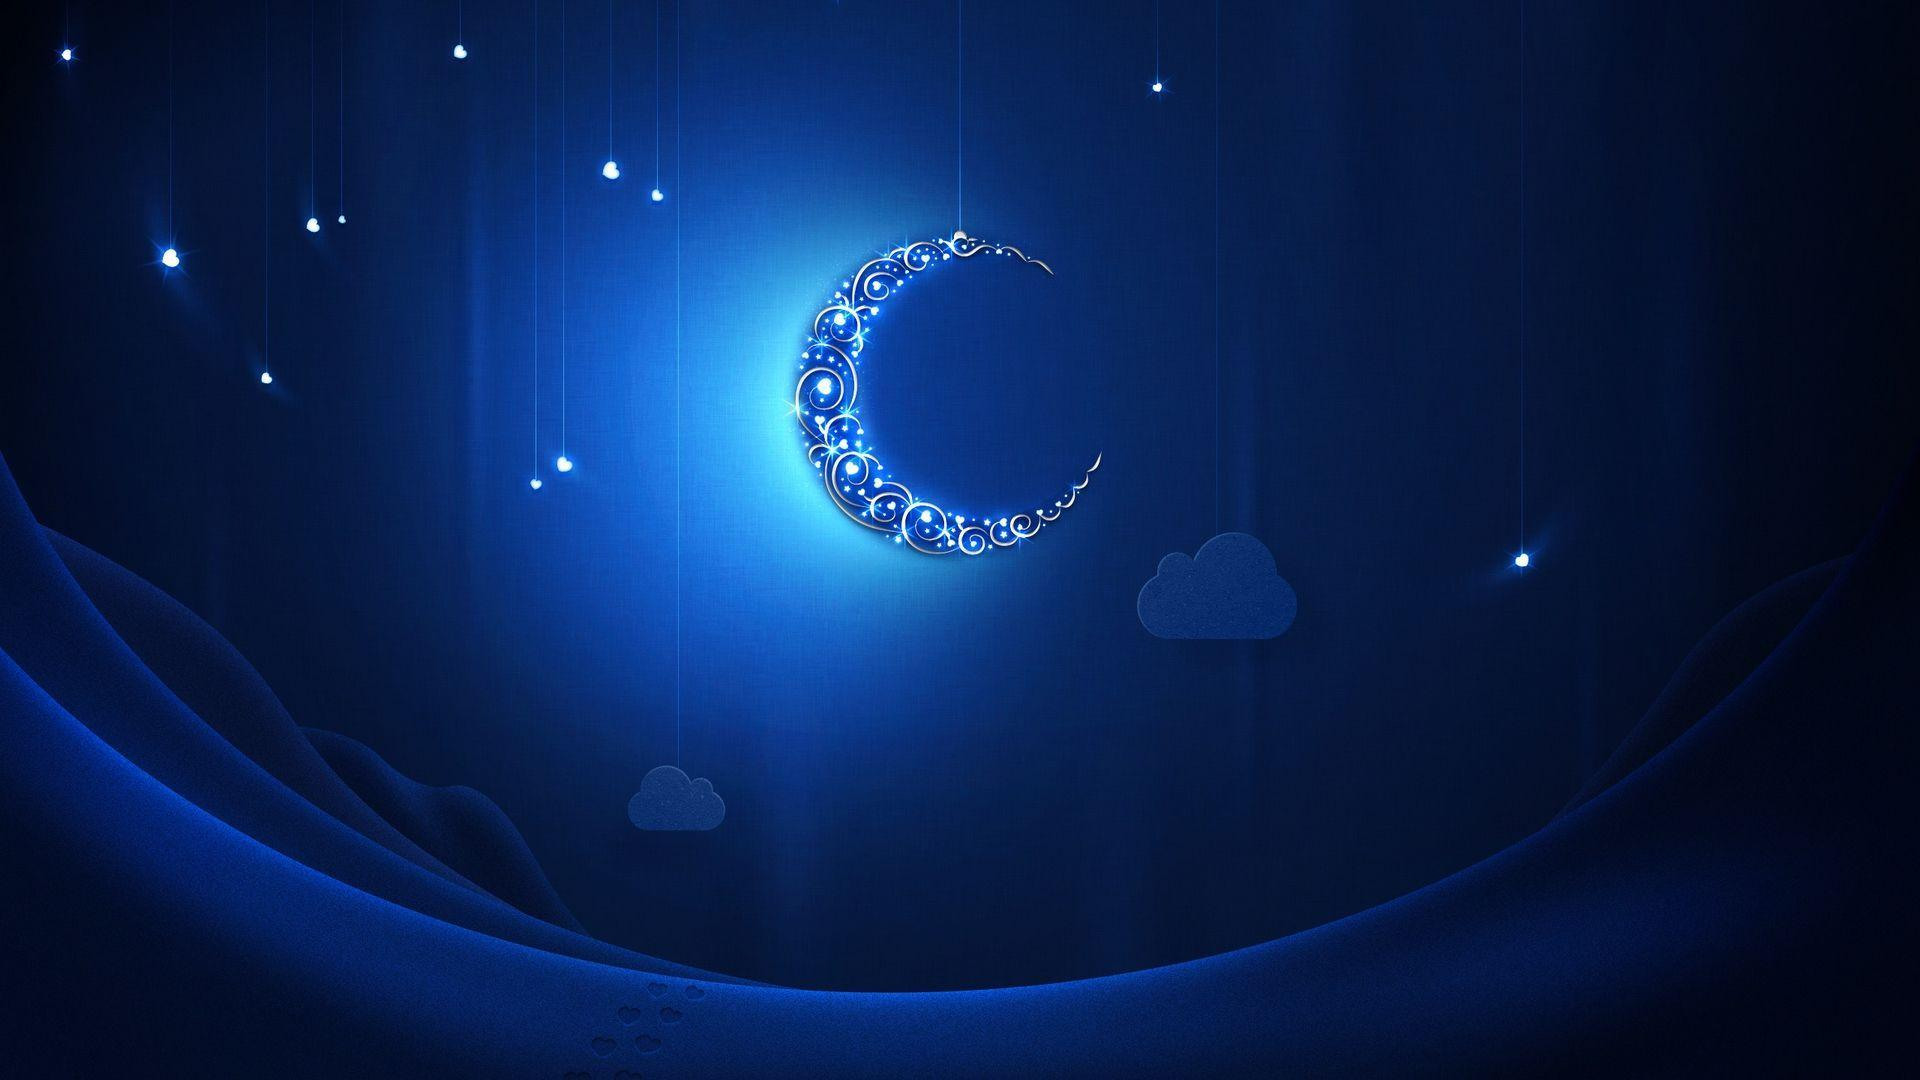 Blue moon at Ramadan wallpapers and images - wallpapers, pictures ...